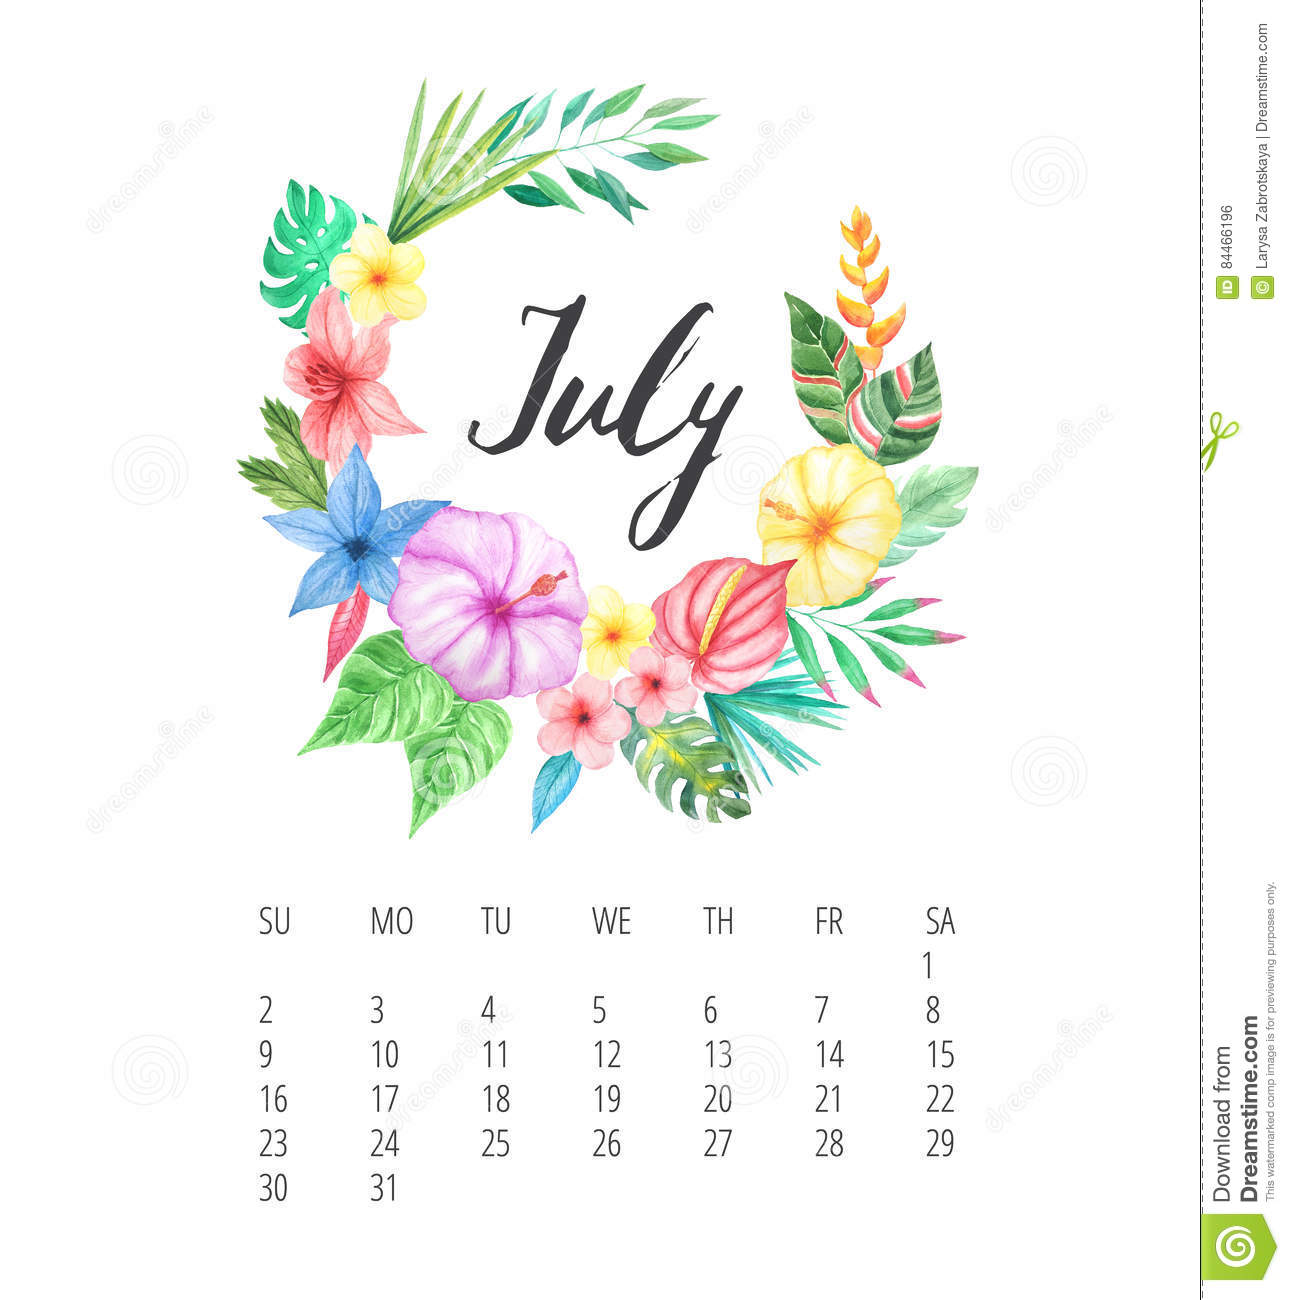 Watercolor Calendar Template For July 2017 Year Stock Illustration